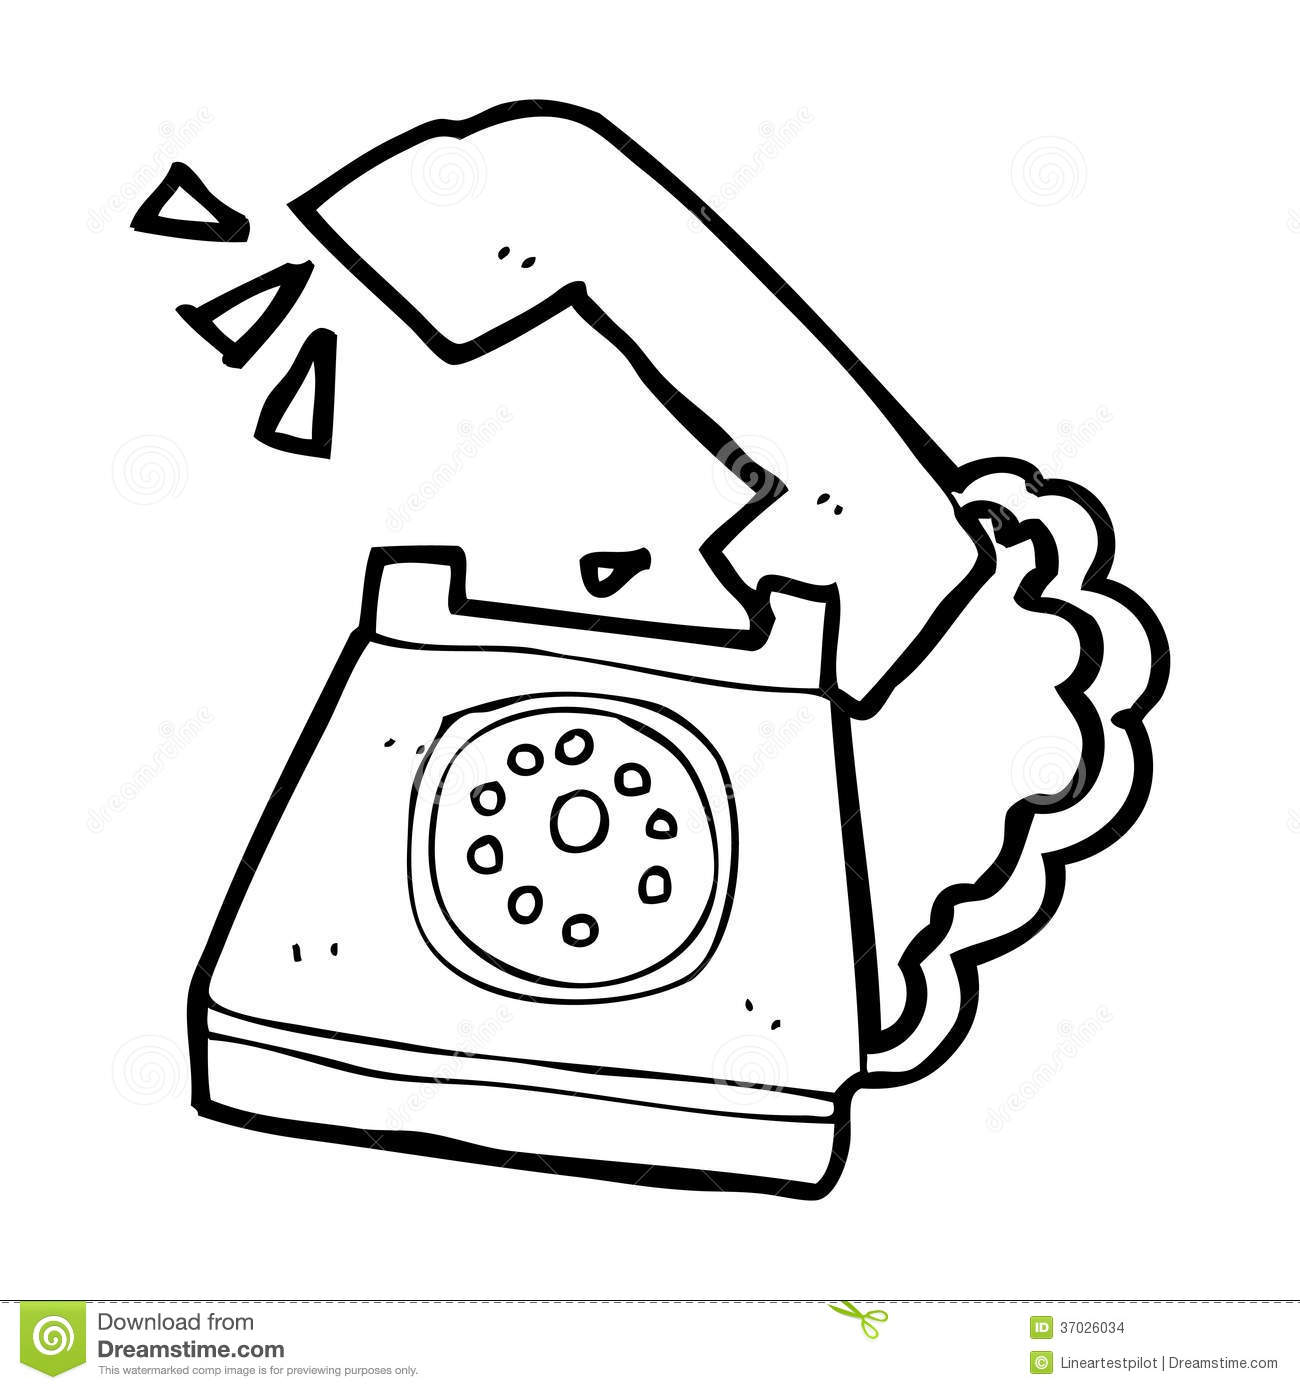 Telephone Clipart Black And White 3 Clipart Station